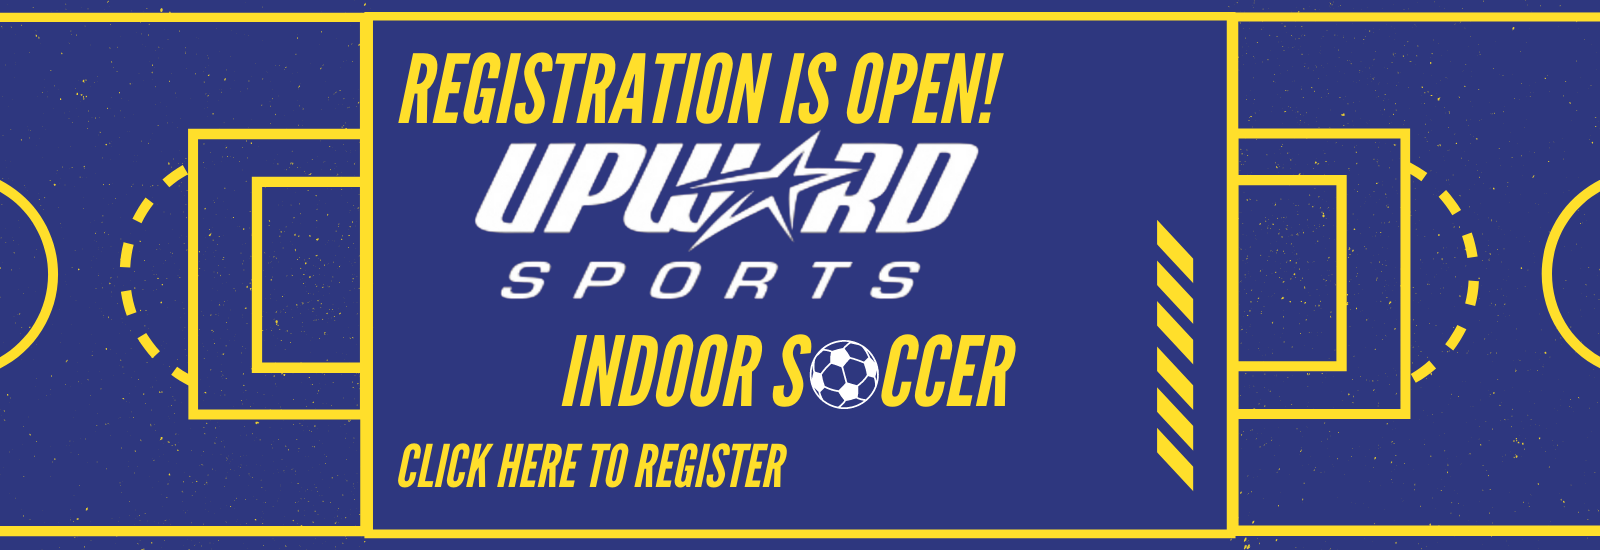 REGISTRATION IS OPEN!-Slider